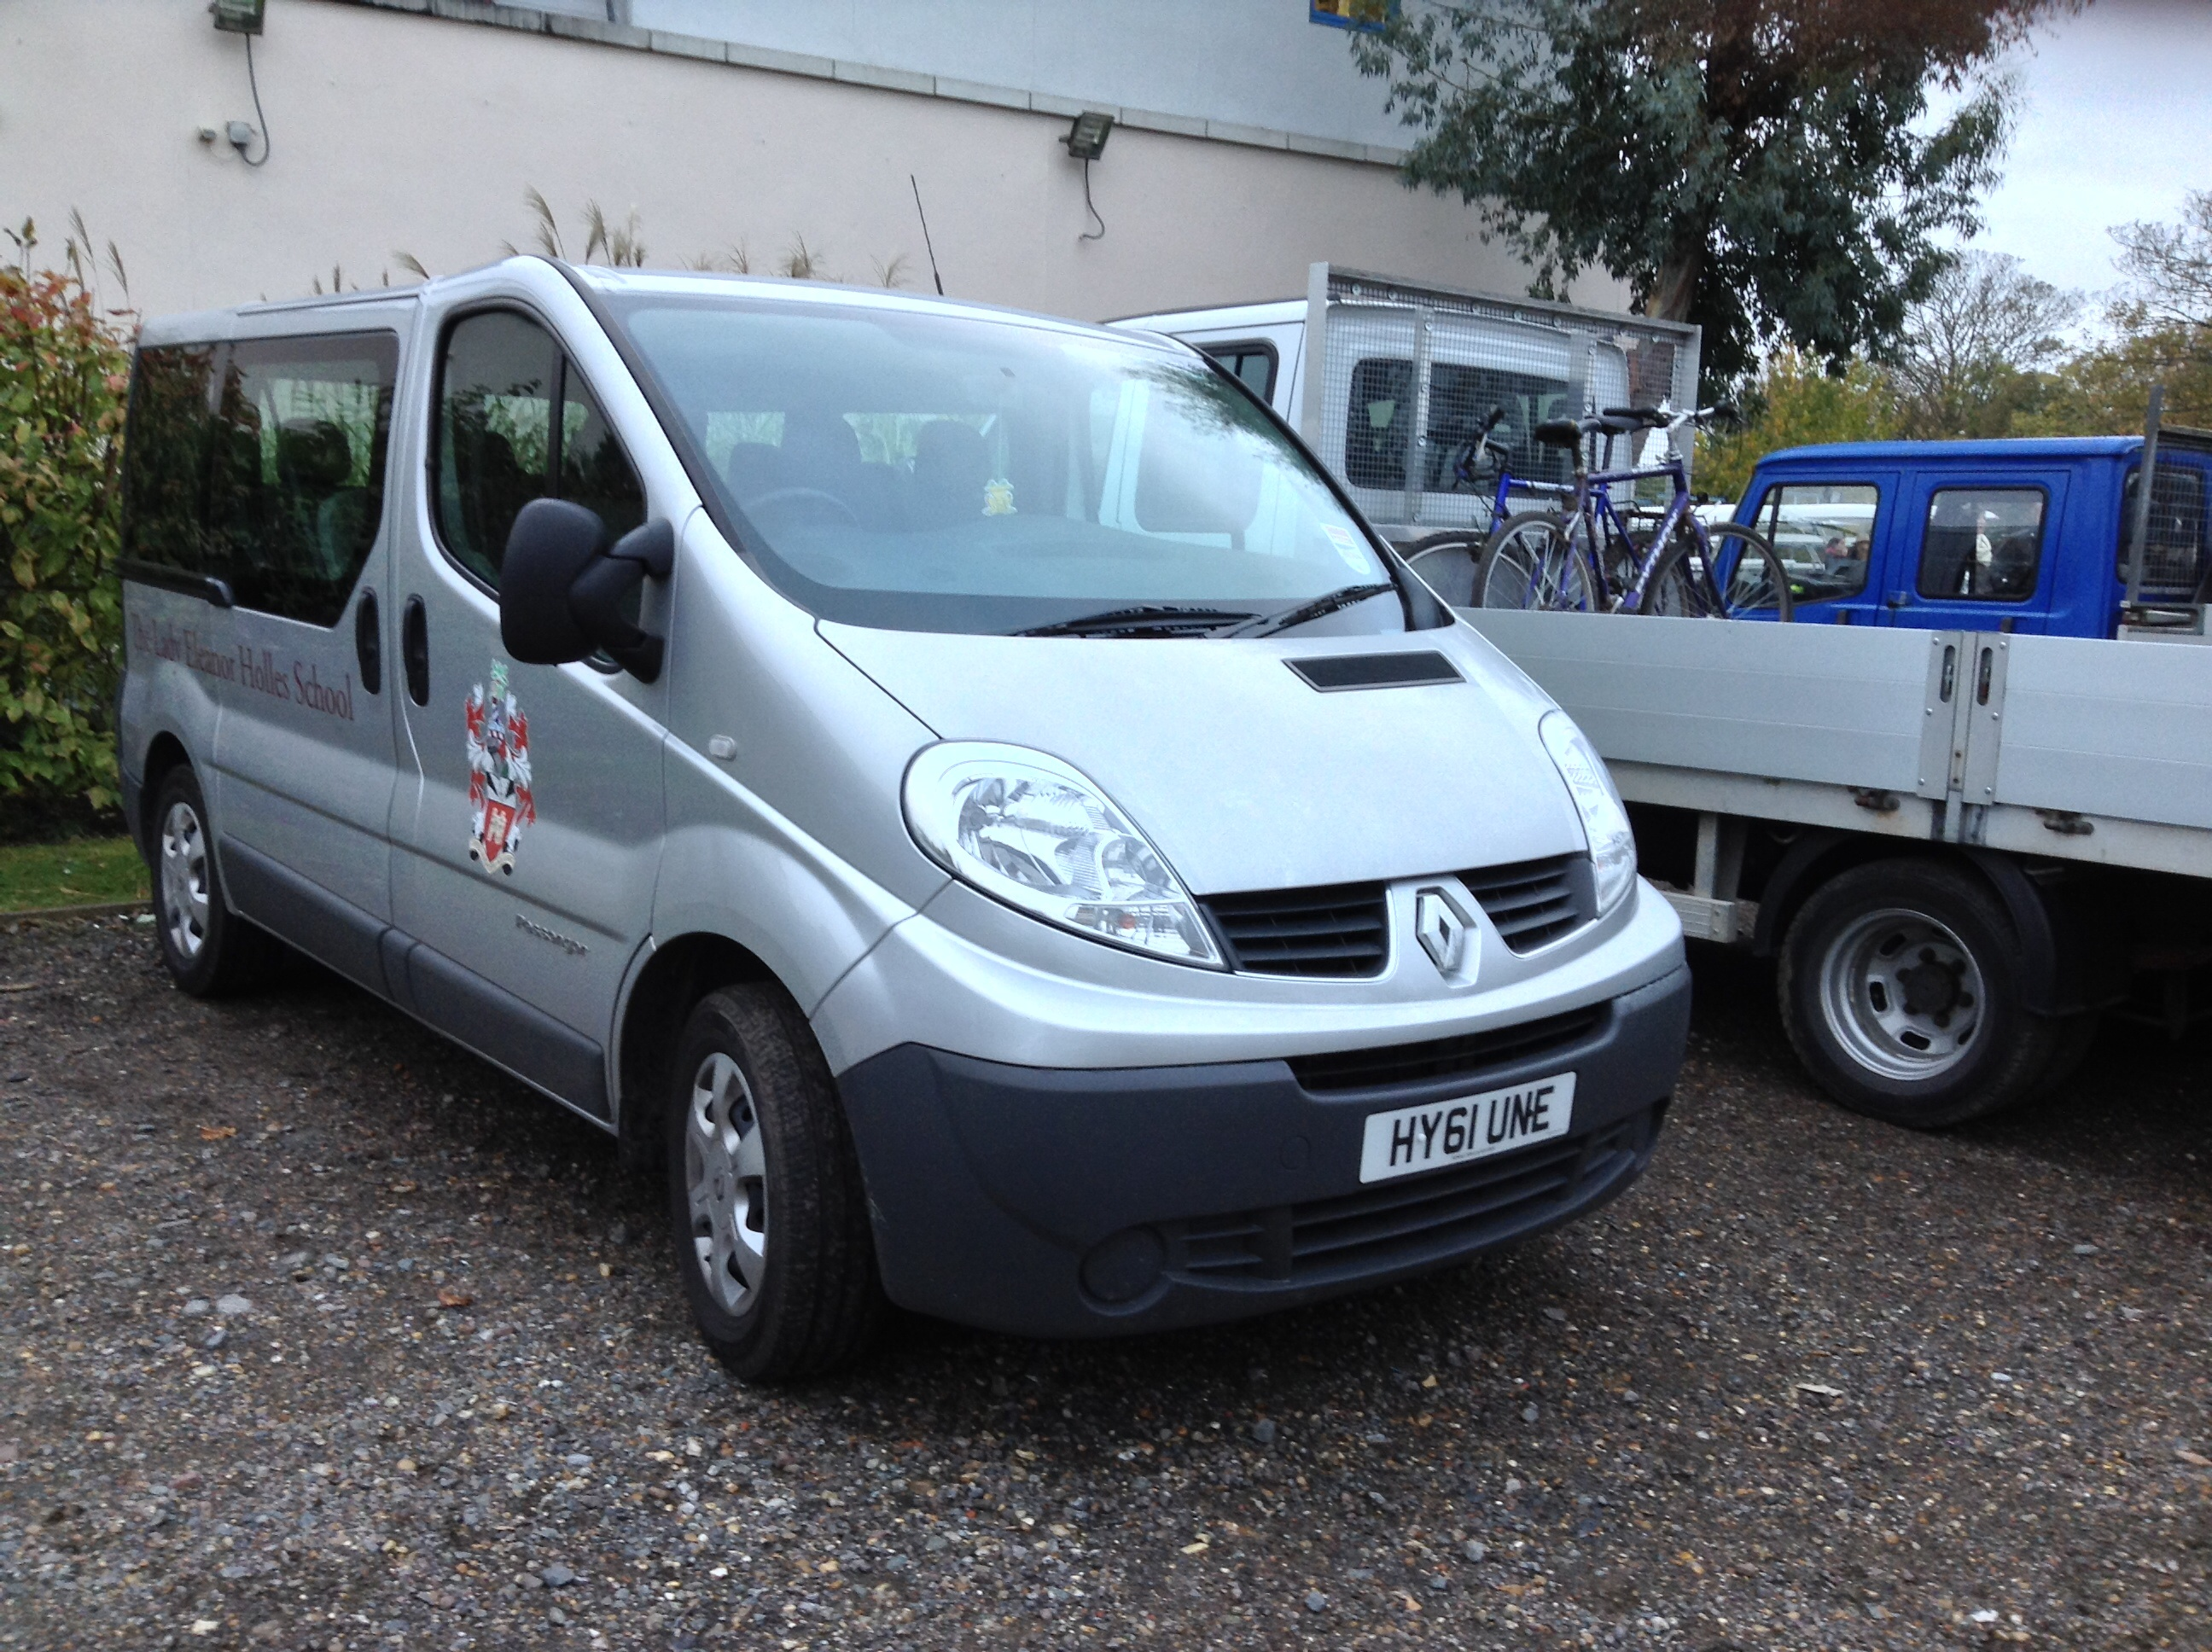 File:A Renault Trafic 9 seater minibus at the 2013 Hampton Small Boats Head 2013-11-16 16-57.jpg - Wikimedia Commons